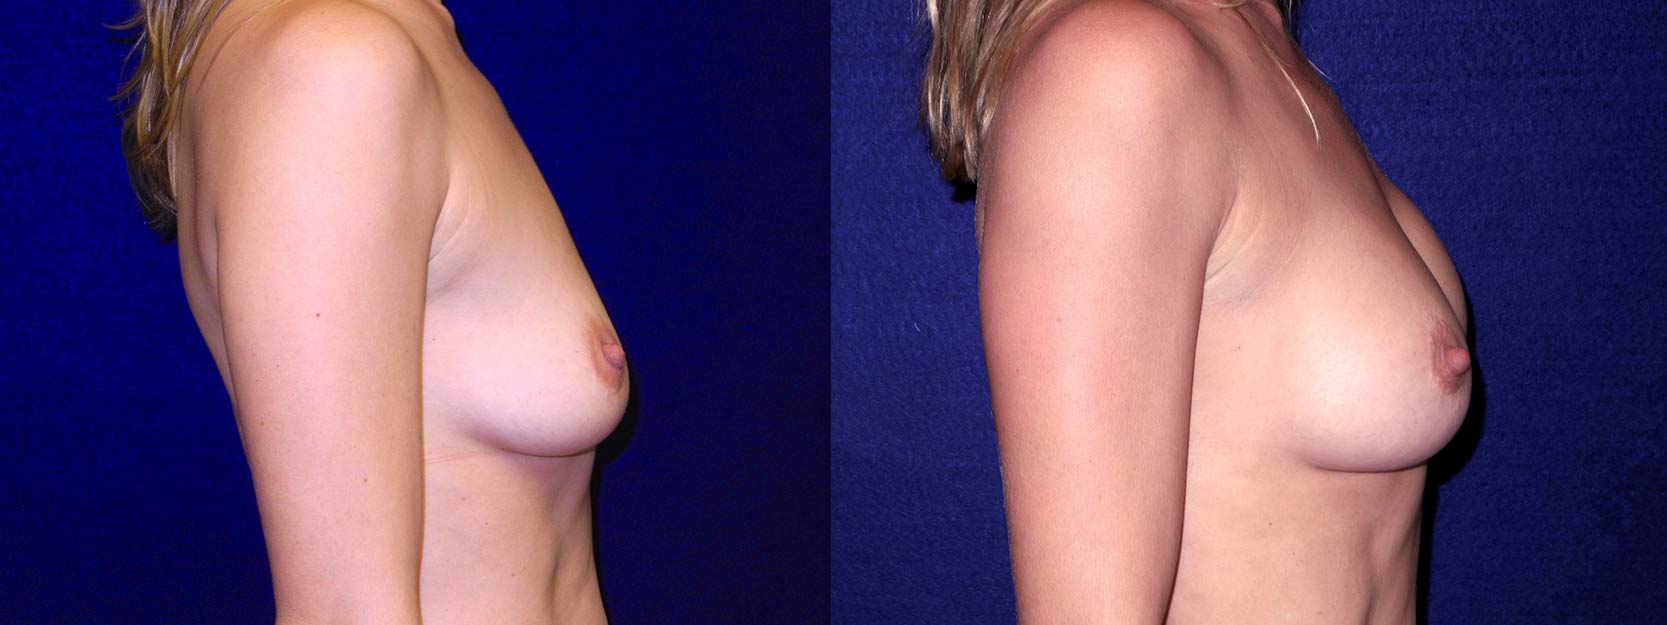 Right Profile View - Breast Augmentation After Pregnancy - Silicone Implants